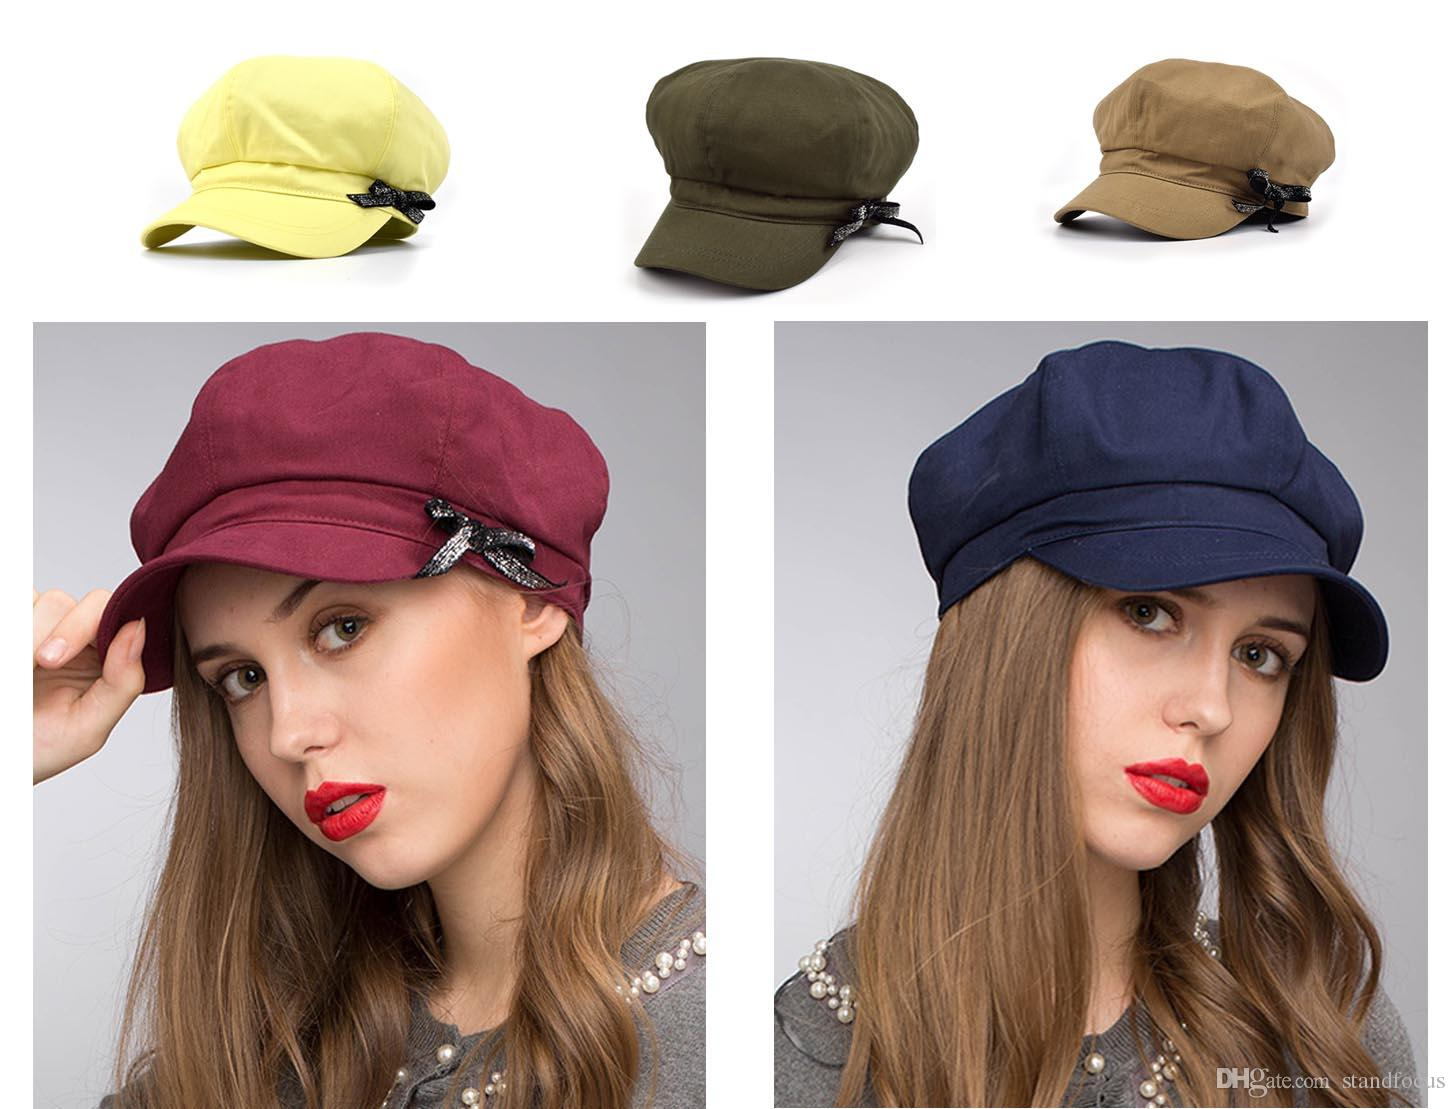 353f9f0c 2019 Stand Focus Baker Boy Cabby Newsboy Gatsby Hat Cap Women Ladies Fashion  Cotton Twill Spring Summer Khaki Navy Olive Burgundy Yellow Causal From ...